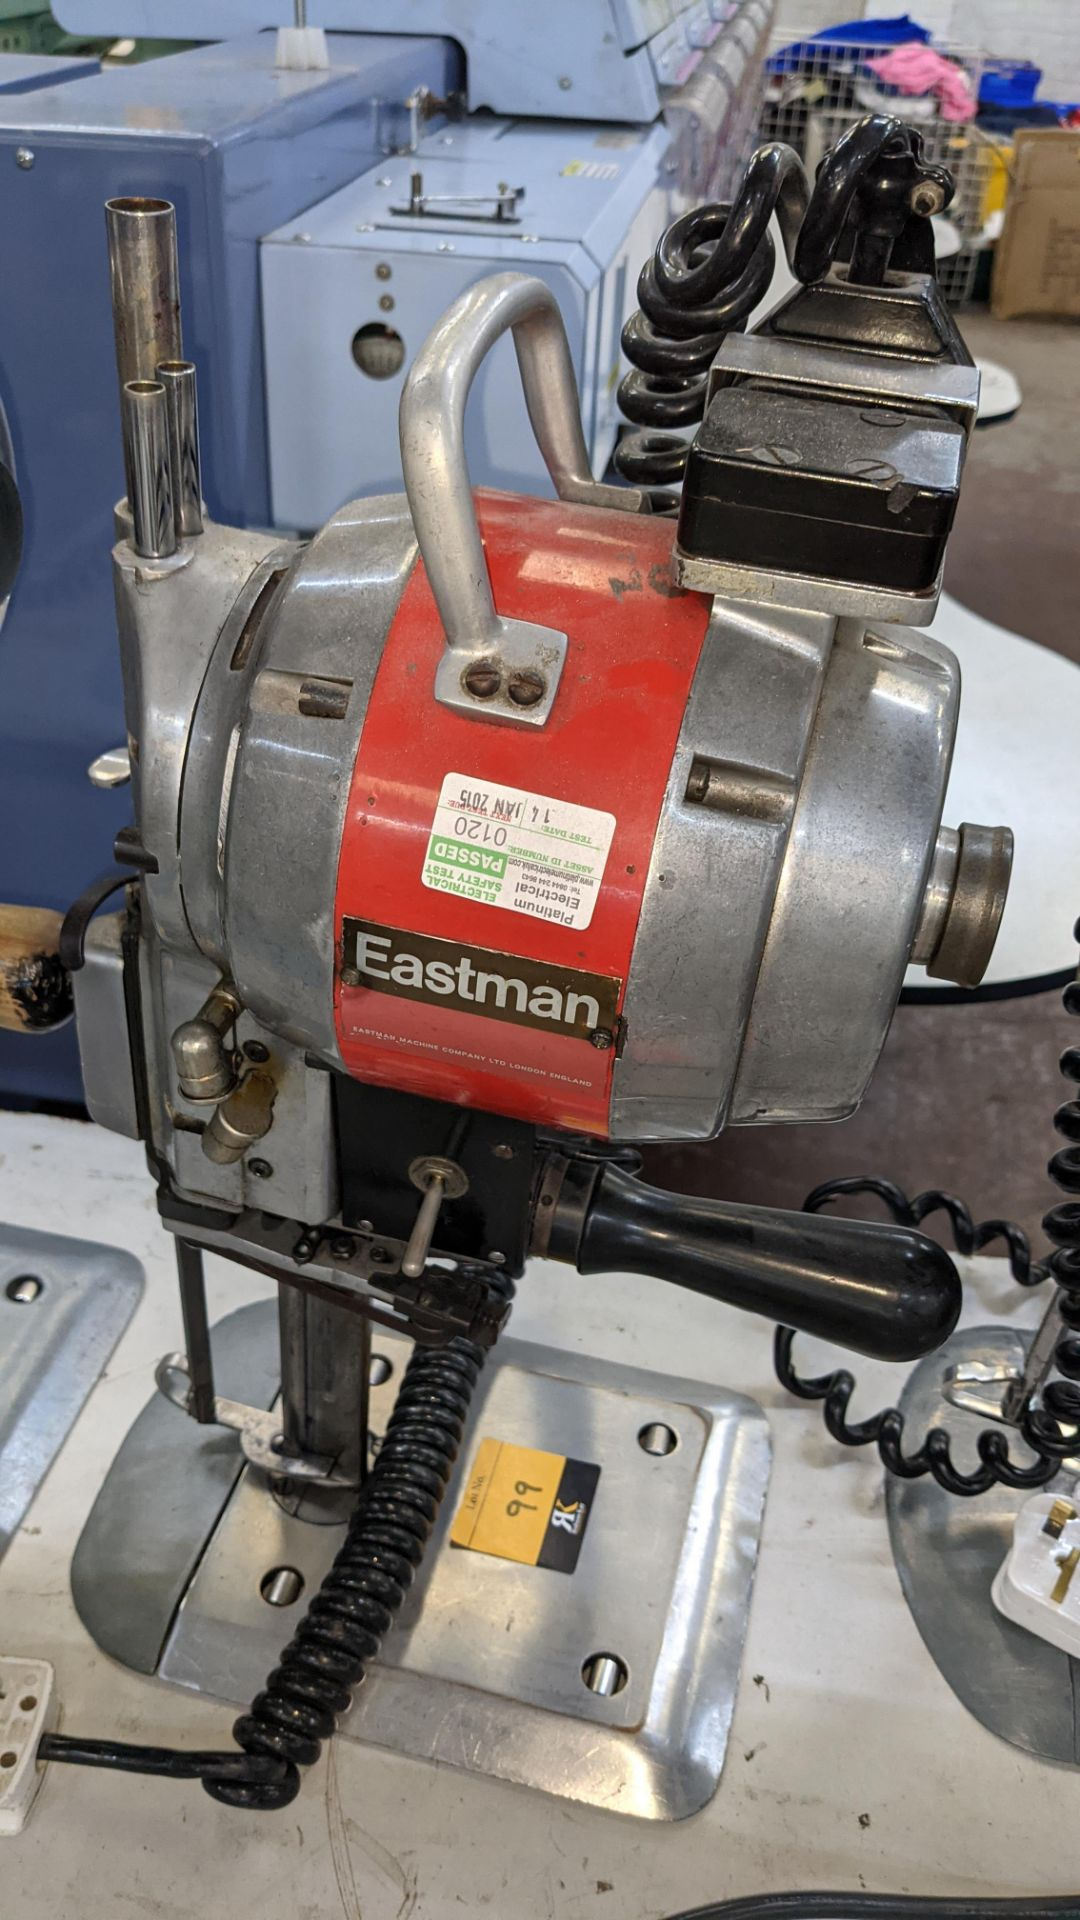 Eastman electric cutter - Image 4 of 5